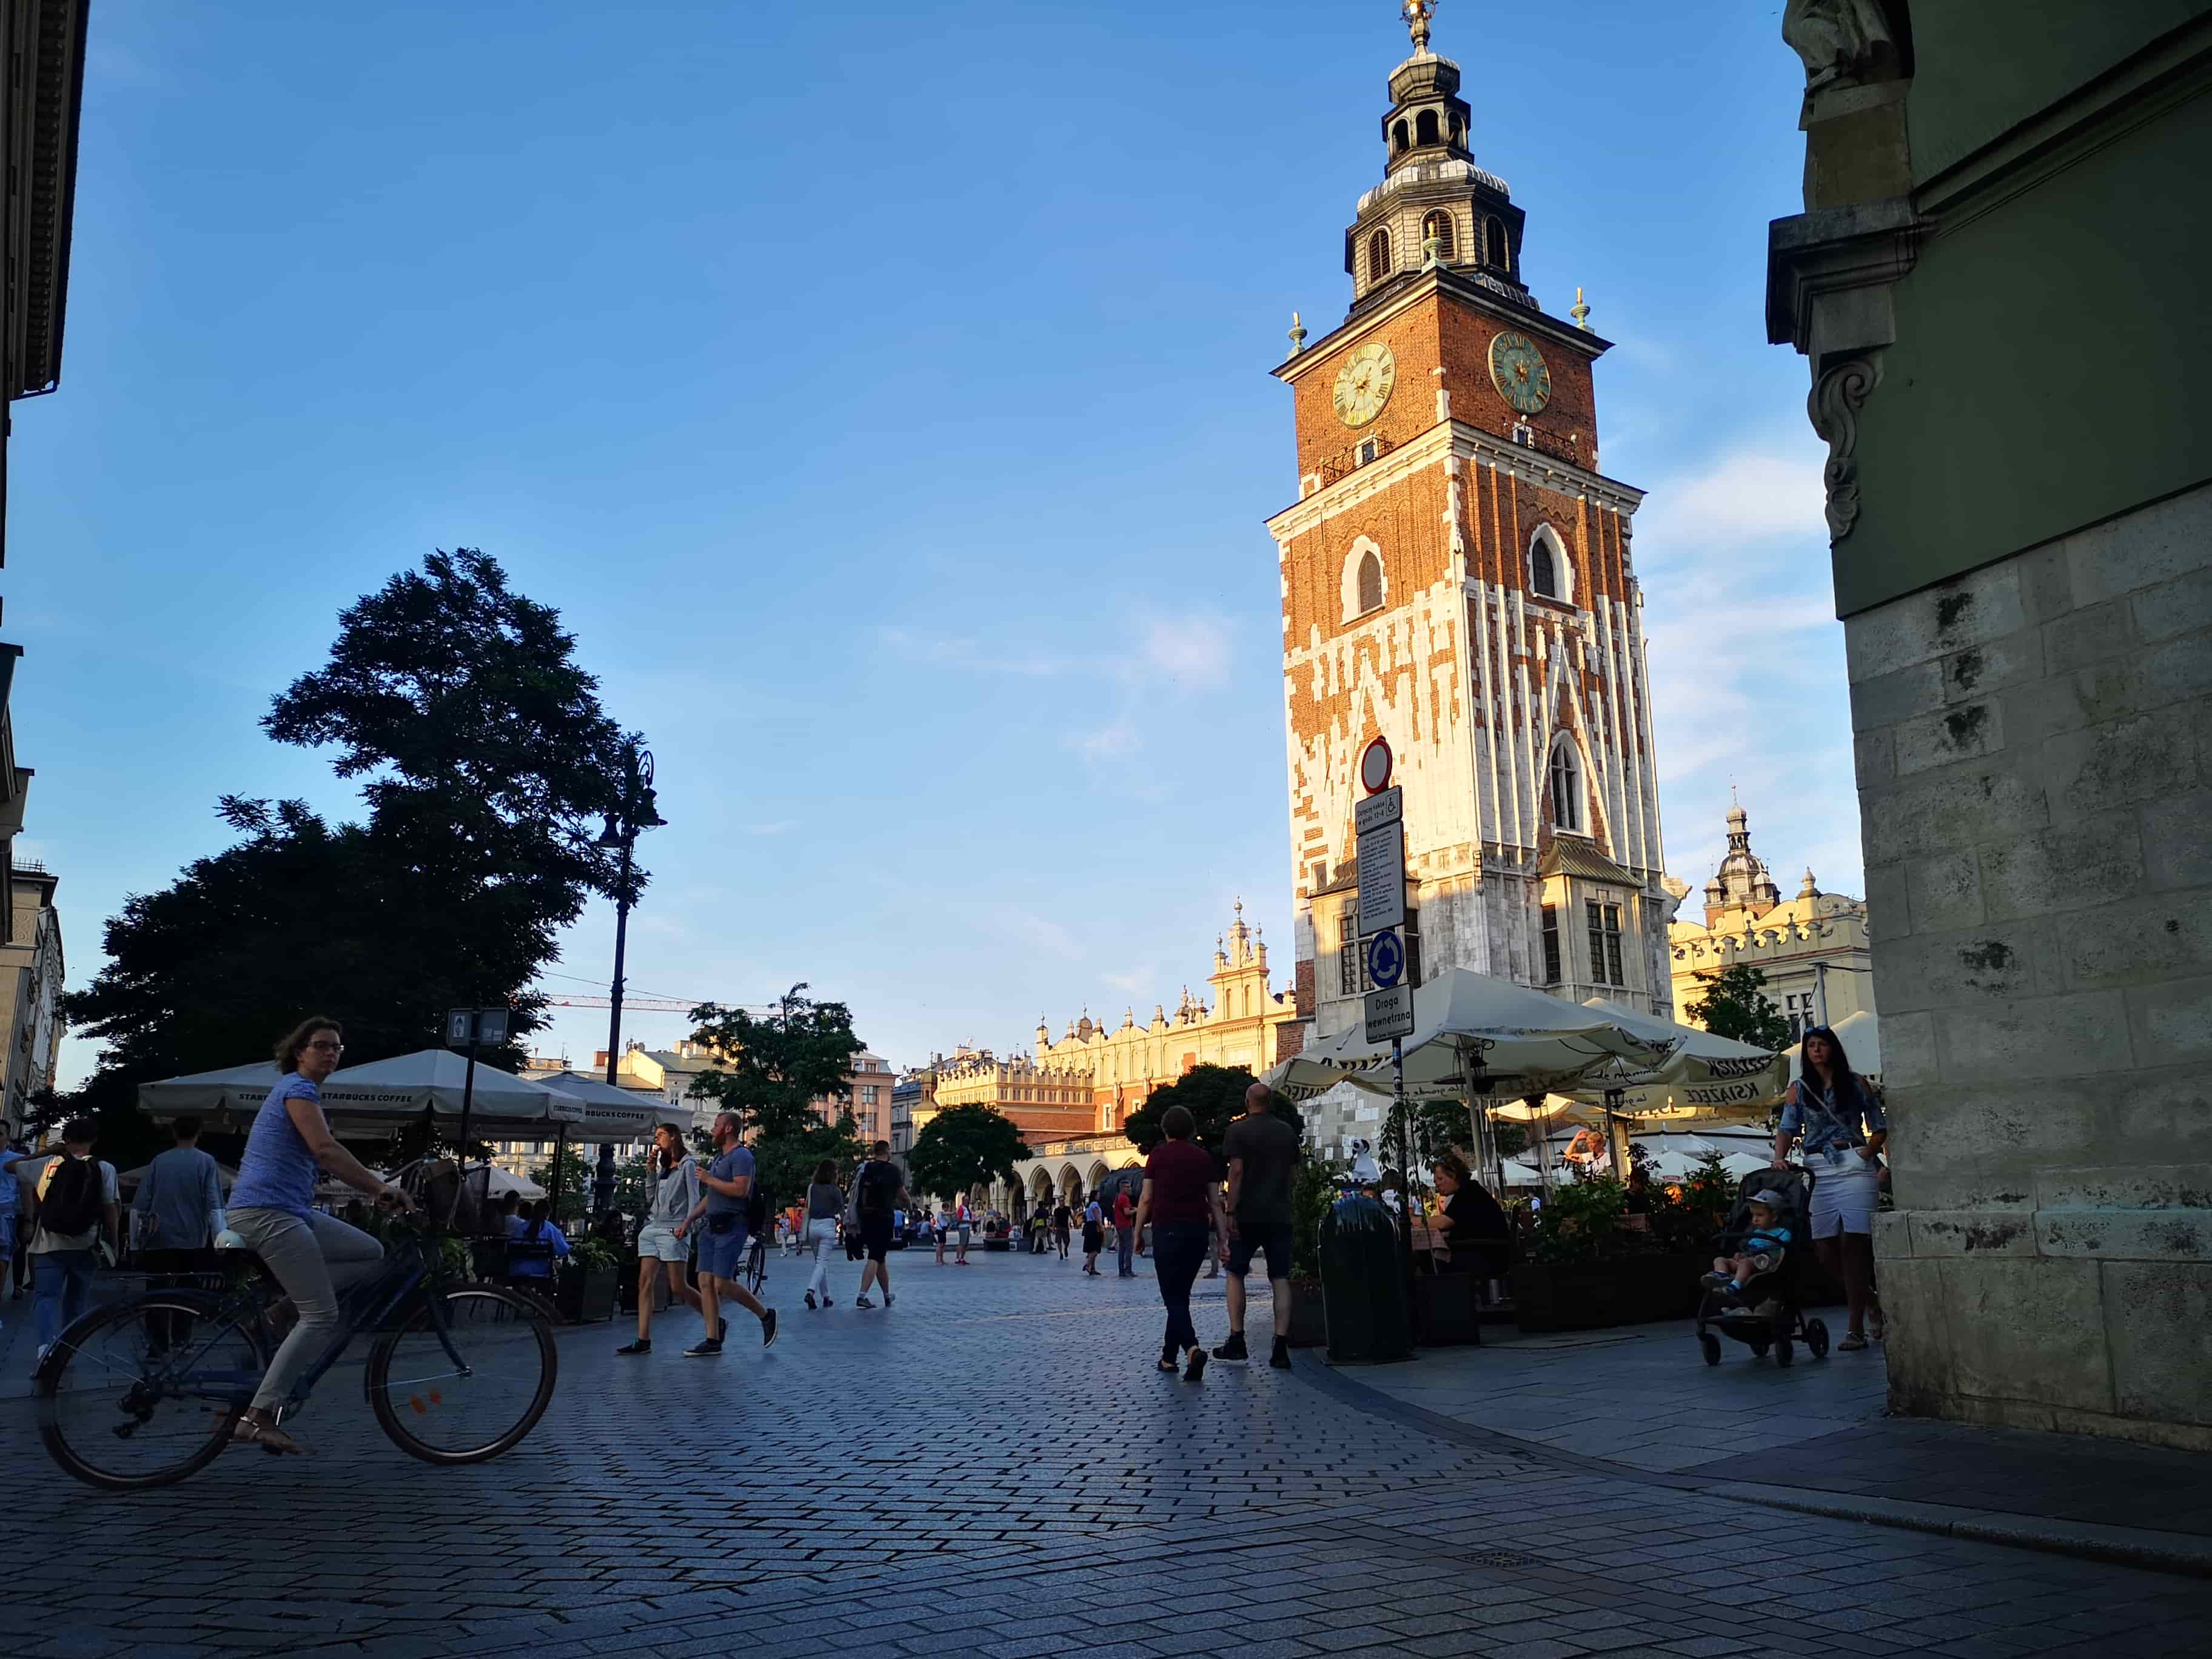 main-squre-in-krakow-during-covid-19-july-2020